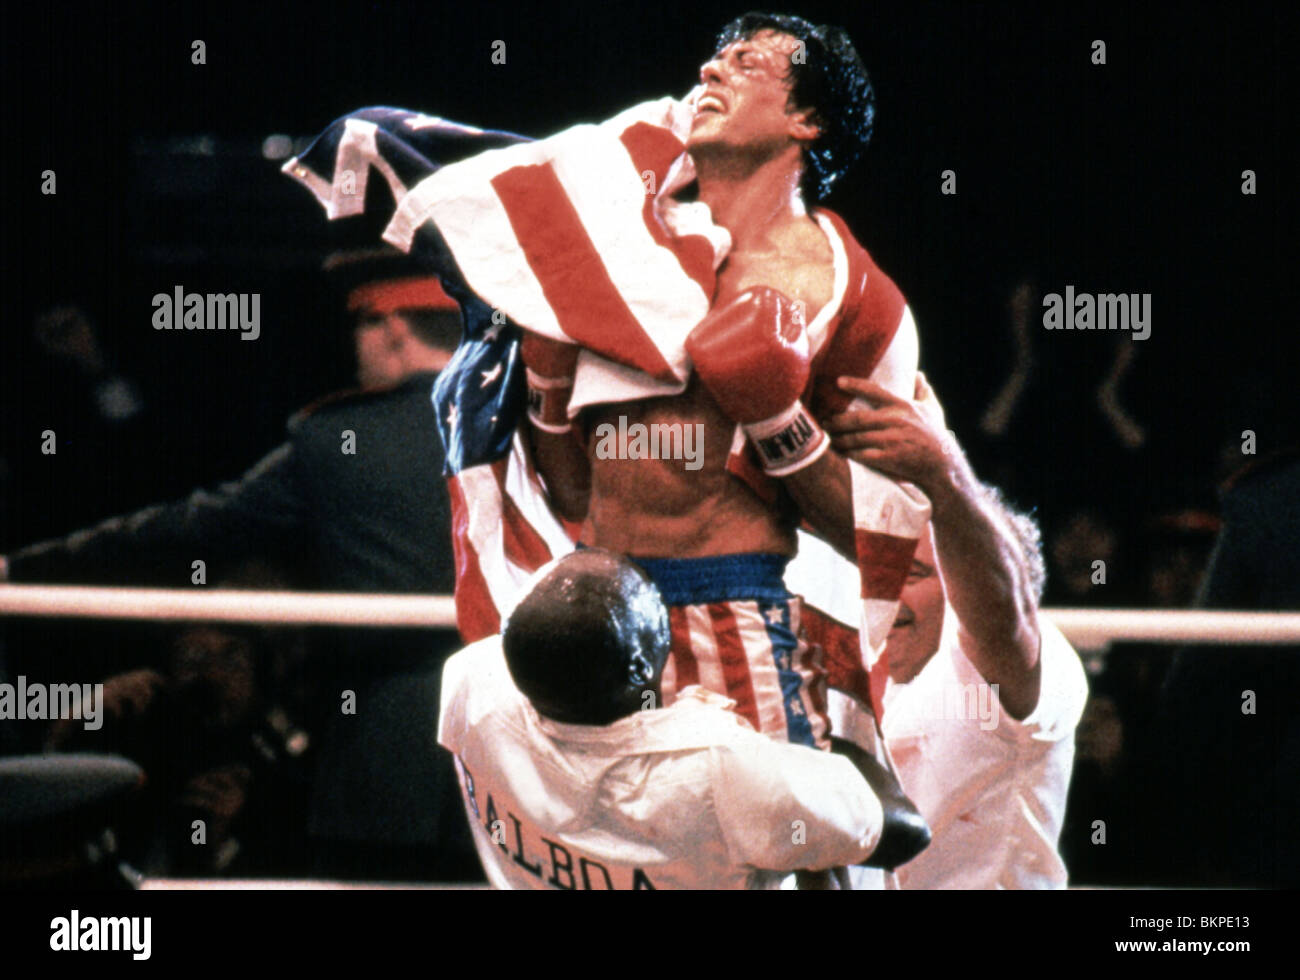 ROCKY IV (1985) SYLVESTER STALLONE RK4 014 L - Stock Image